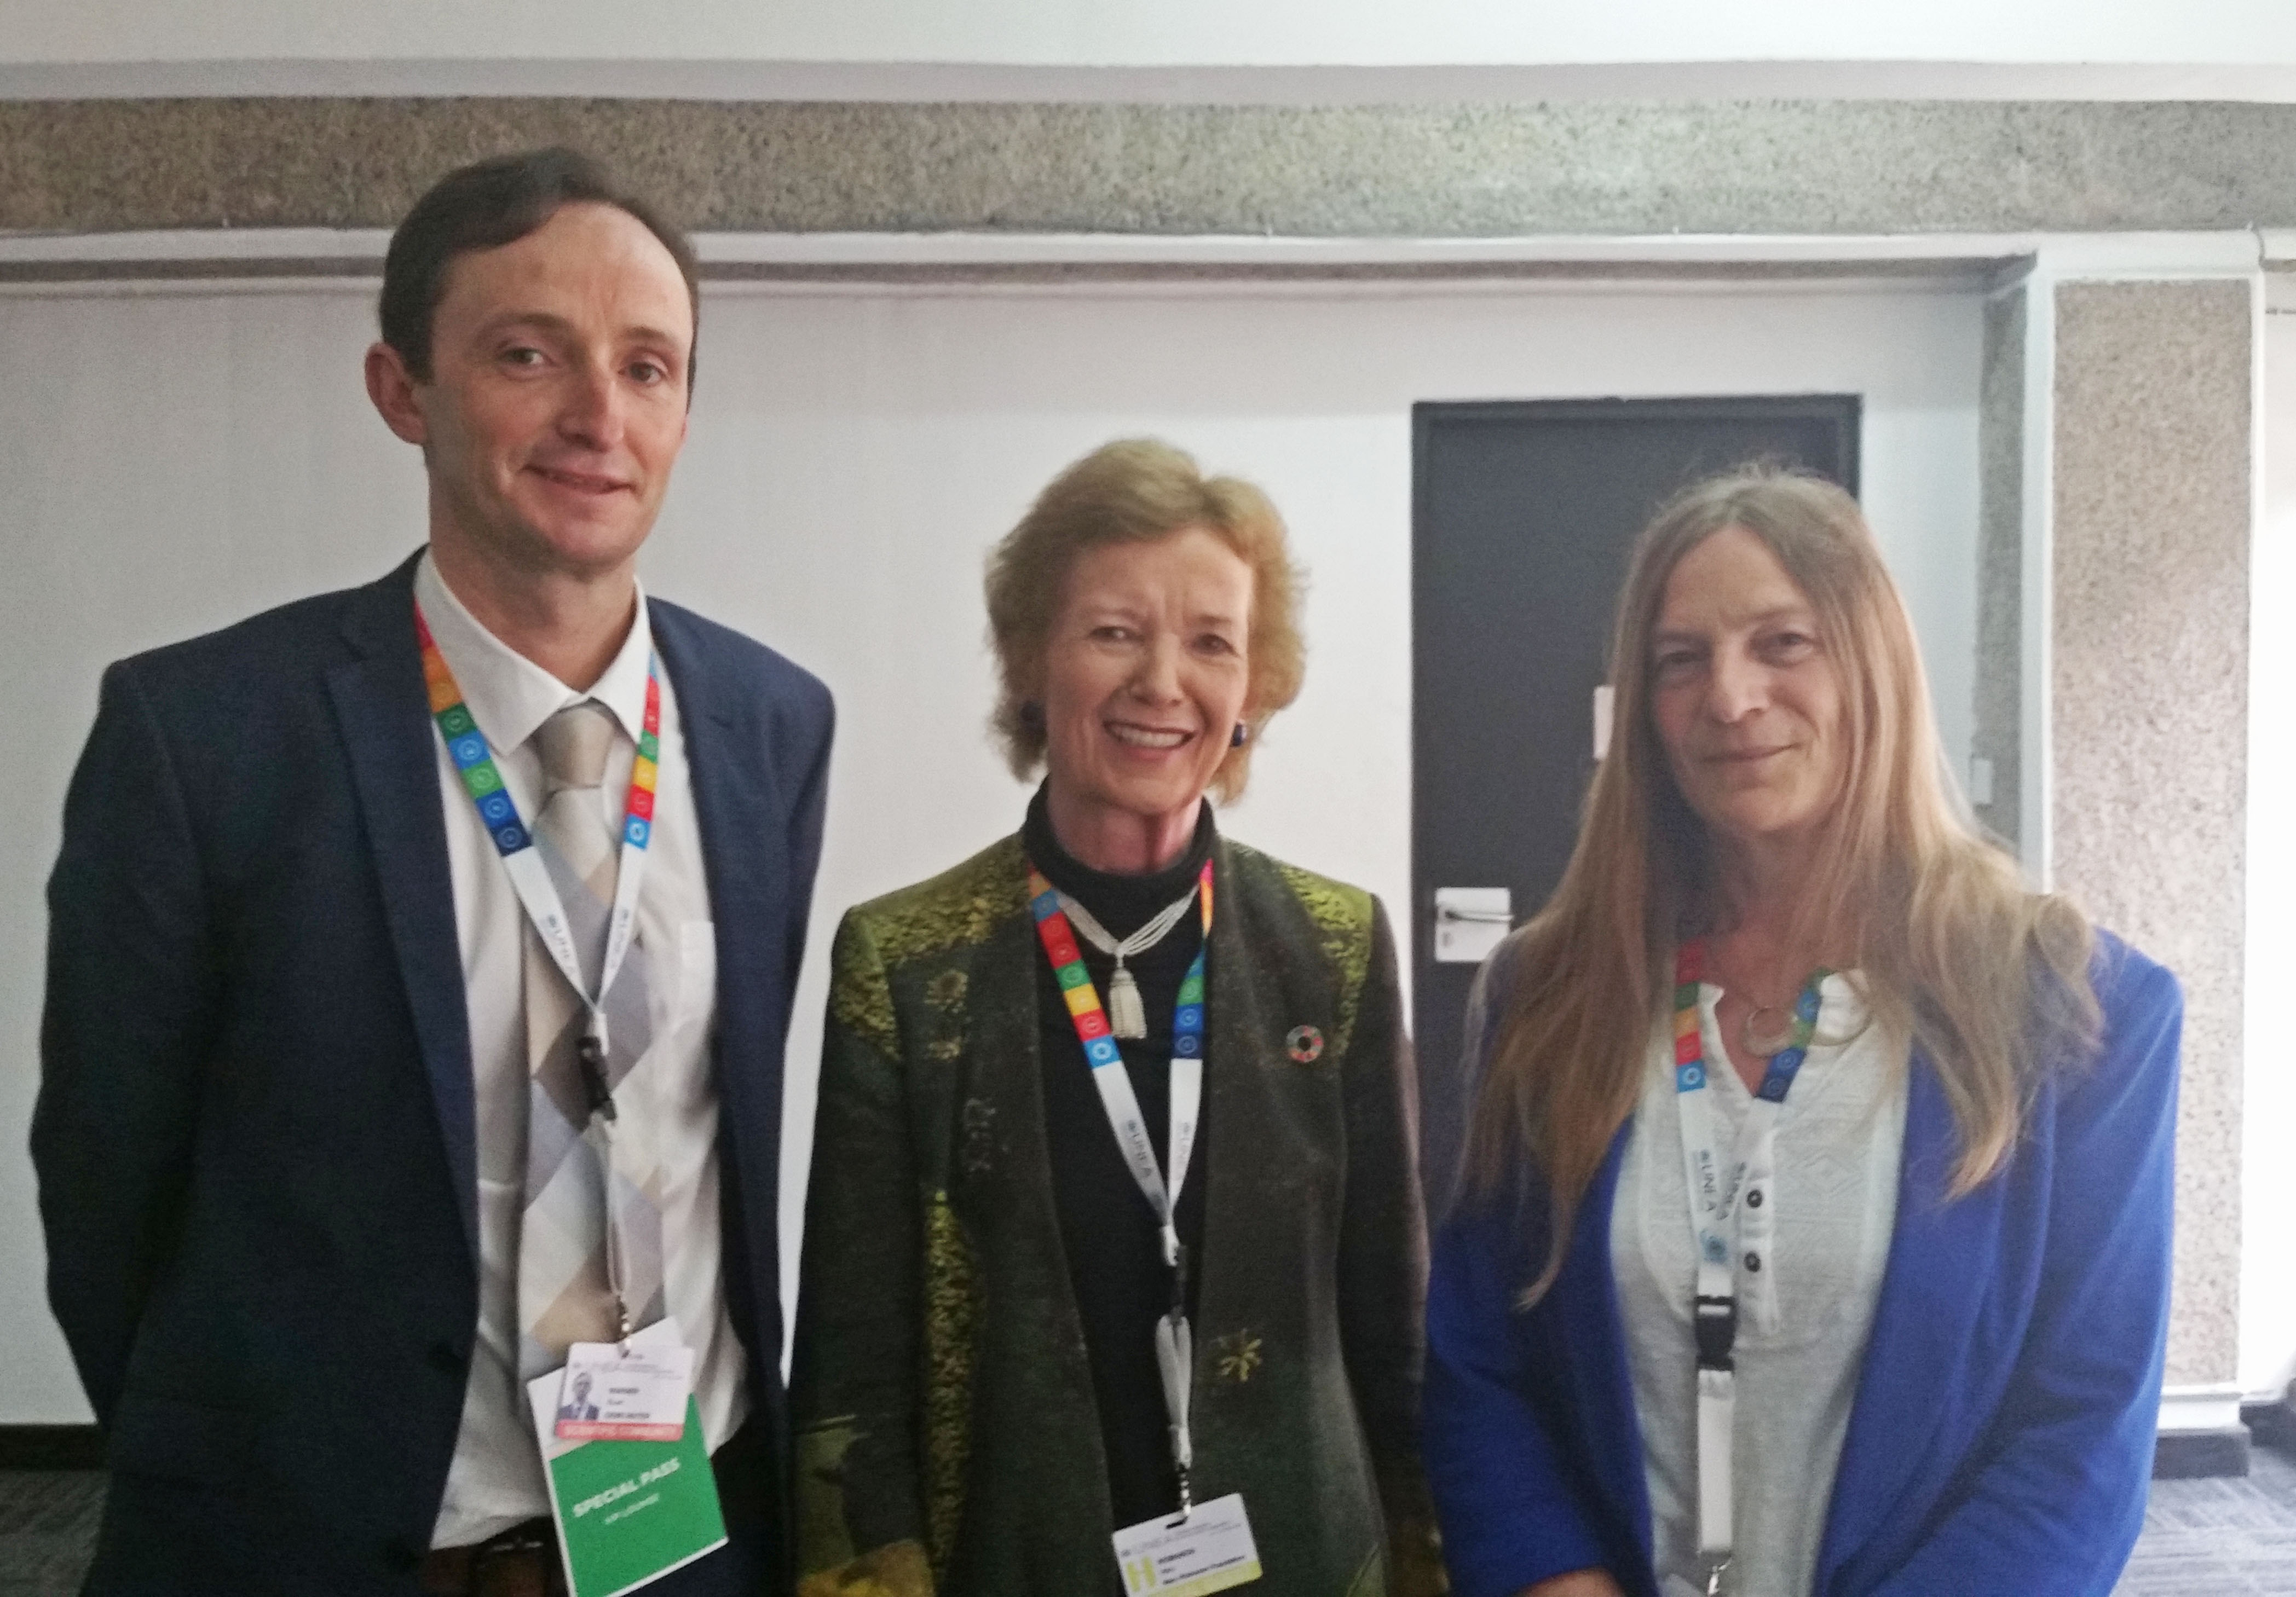 Stuart Warner and Dr. Debbie Chapman with Mary Robinson at UNEA 2016